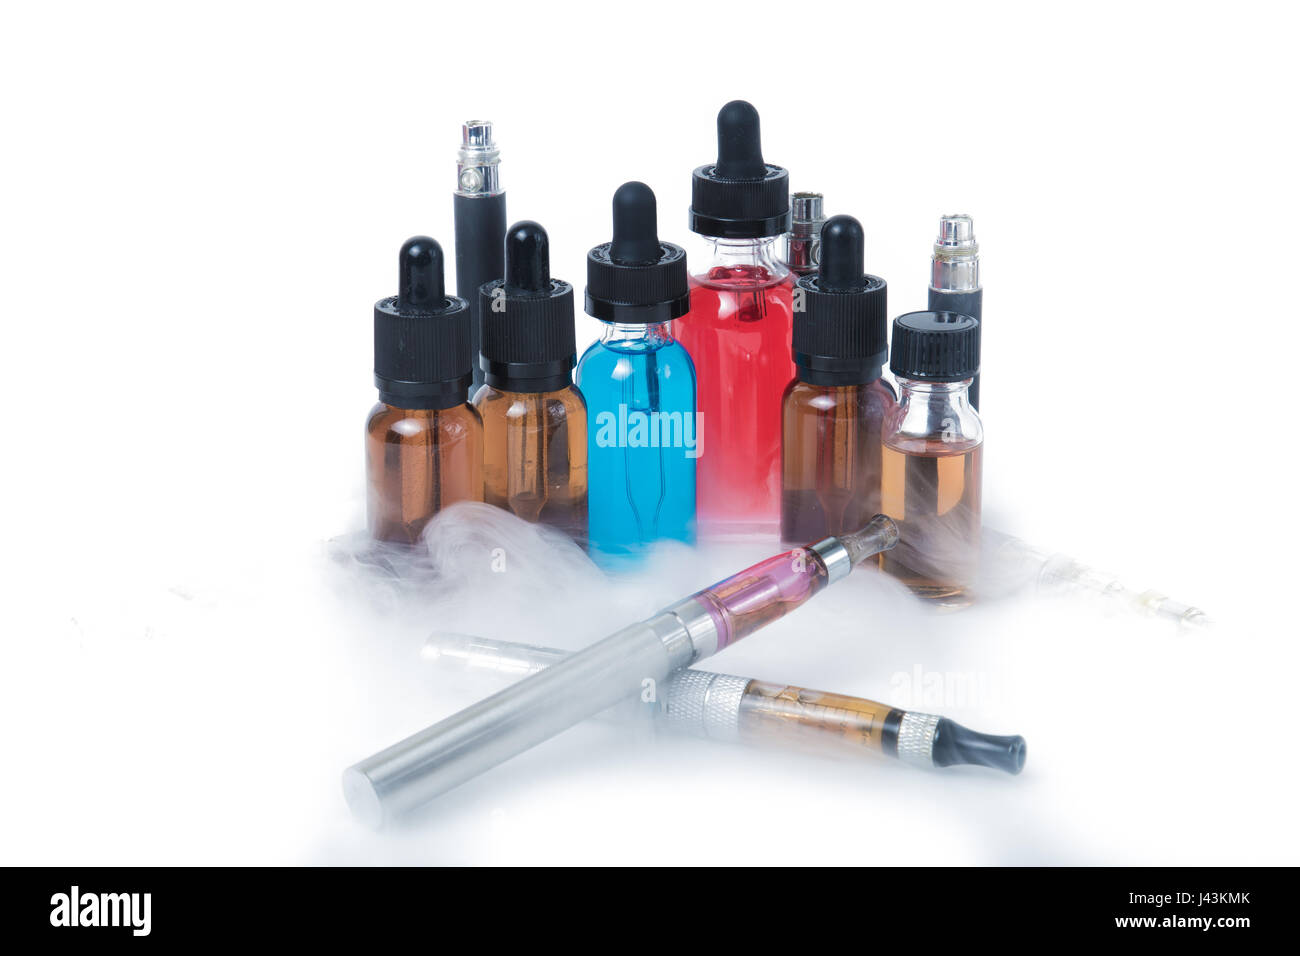 Thin e-cigarettes with glass bottles and smoke on white background - Stock Image